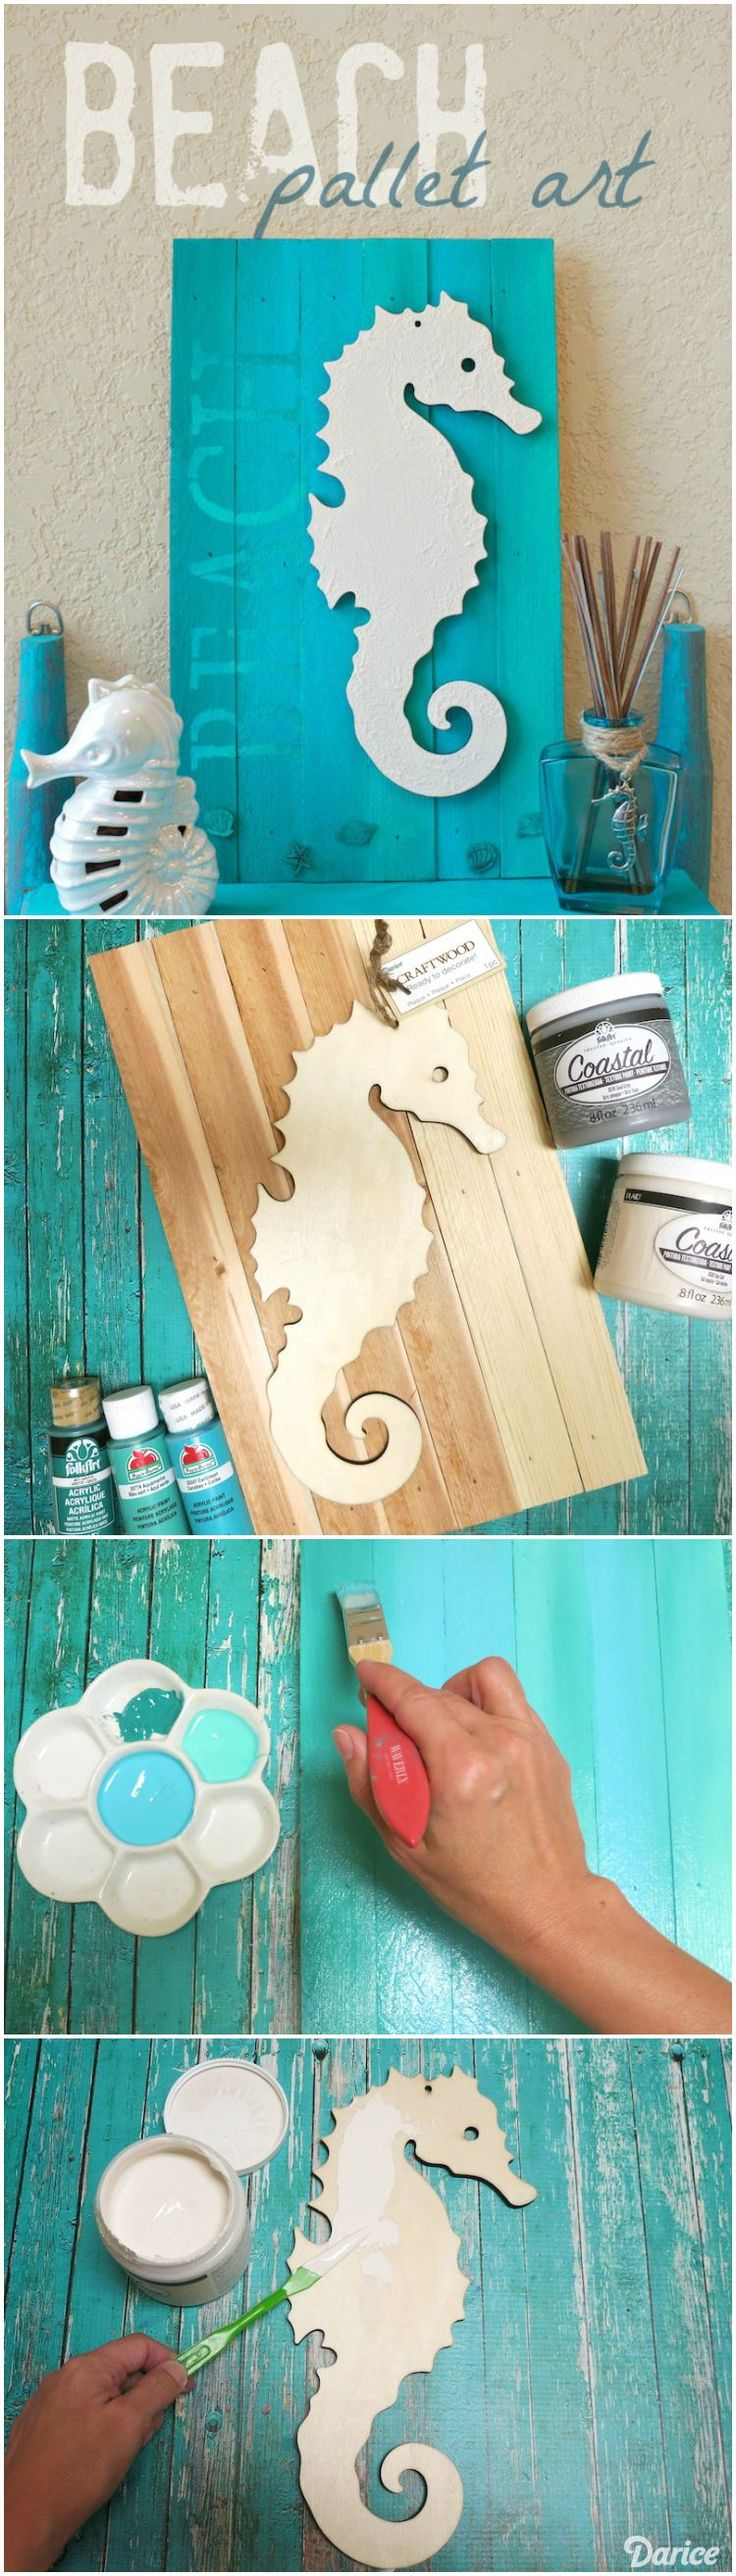 Bring the feel of the beach into your home with this seahorse beach pallet art. It will make a fun addition to your home or patio decor this summer.